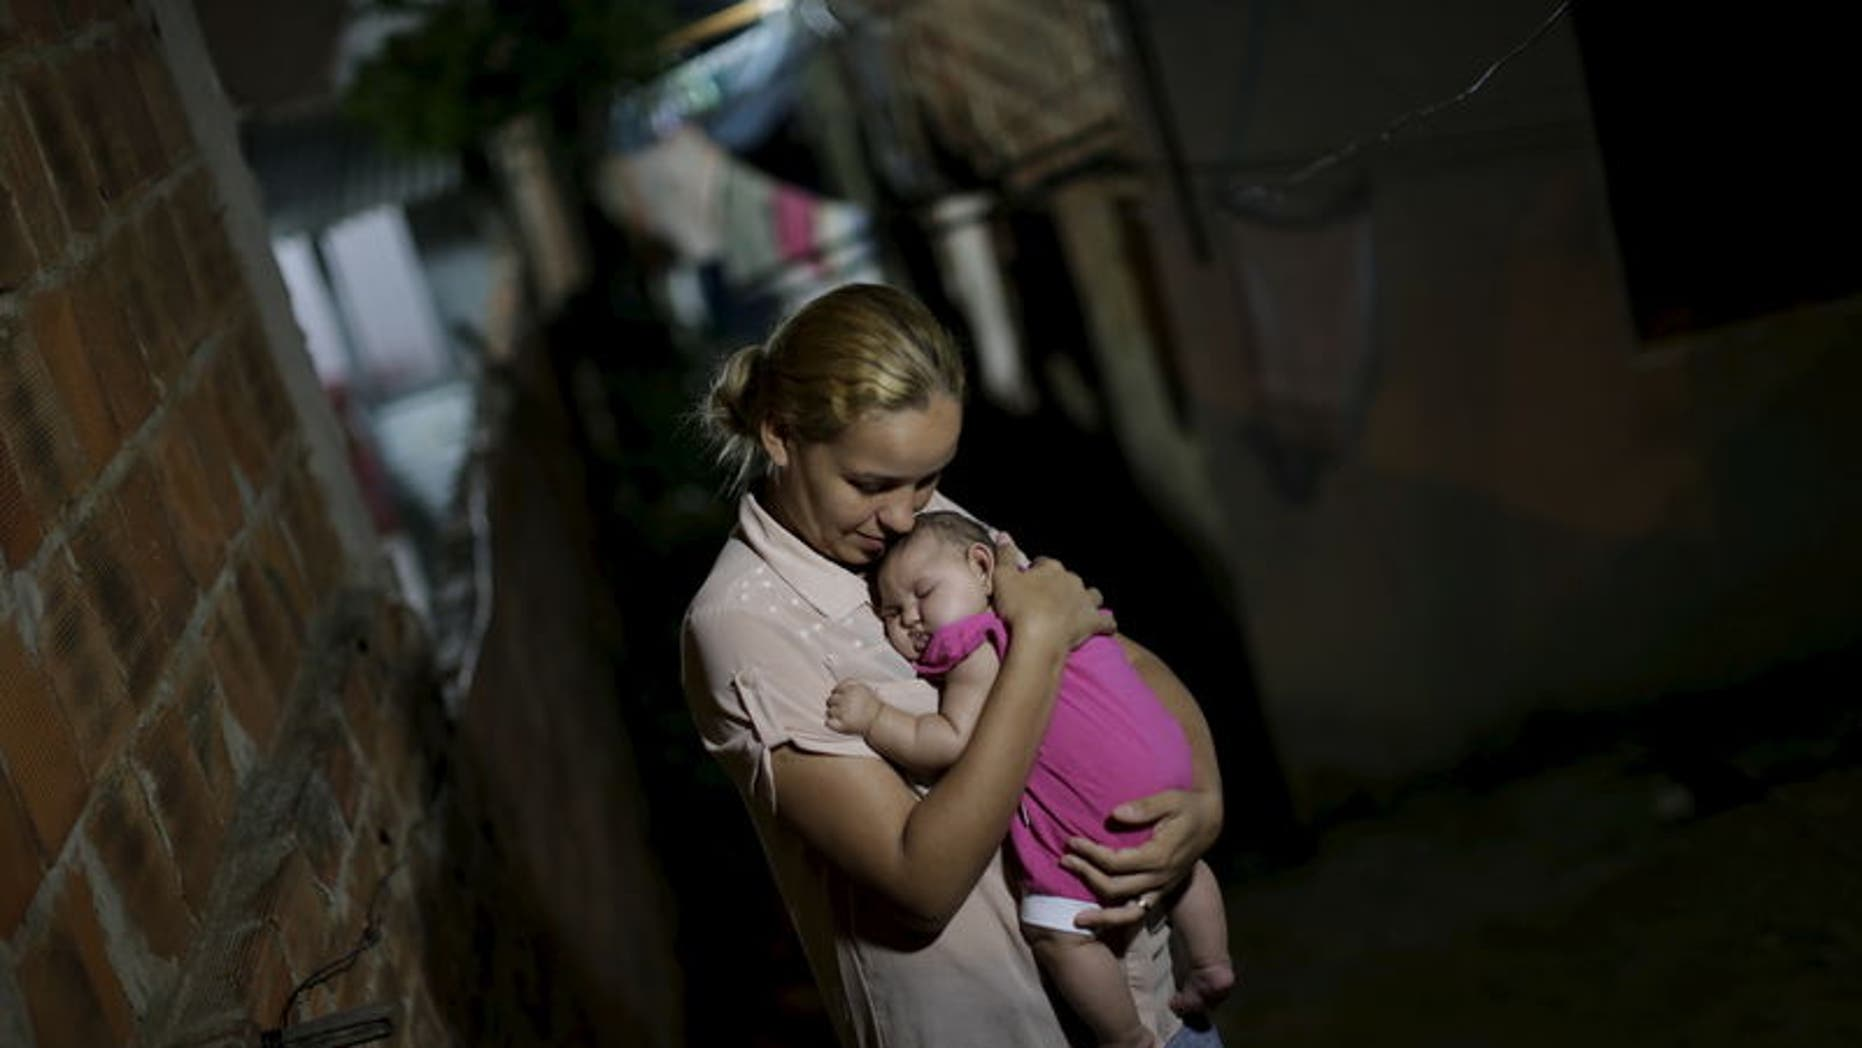 Gleyce Kelly embraces her daughter Maria Geovana, who has microcephaly, in Recife, Brazil, January 25, 2016. REUTERS/Ueslei Marcelino